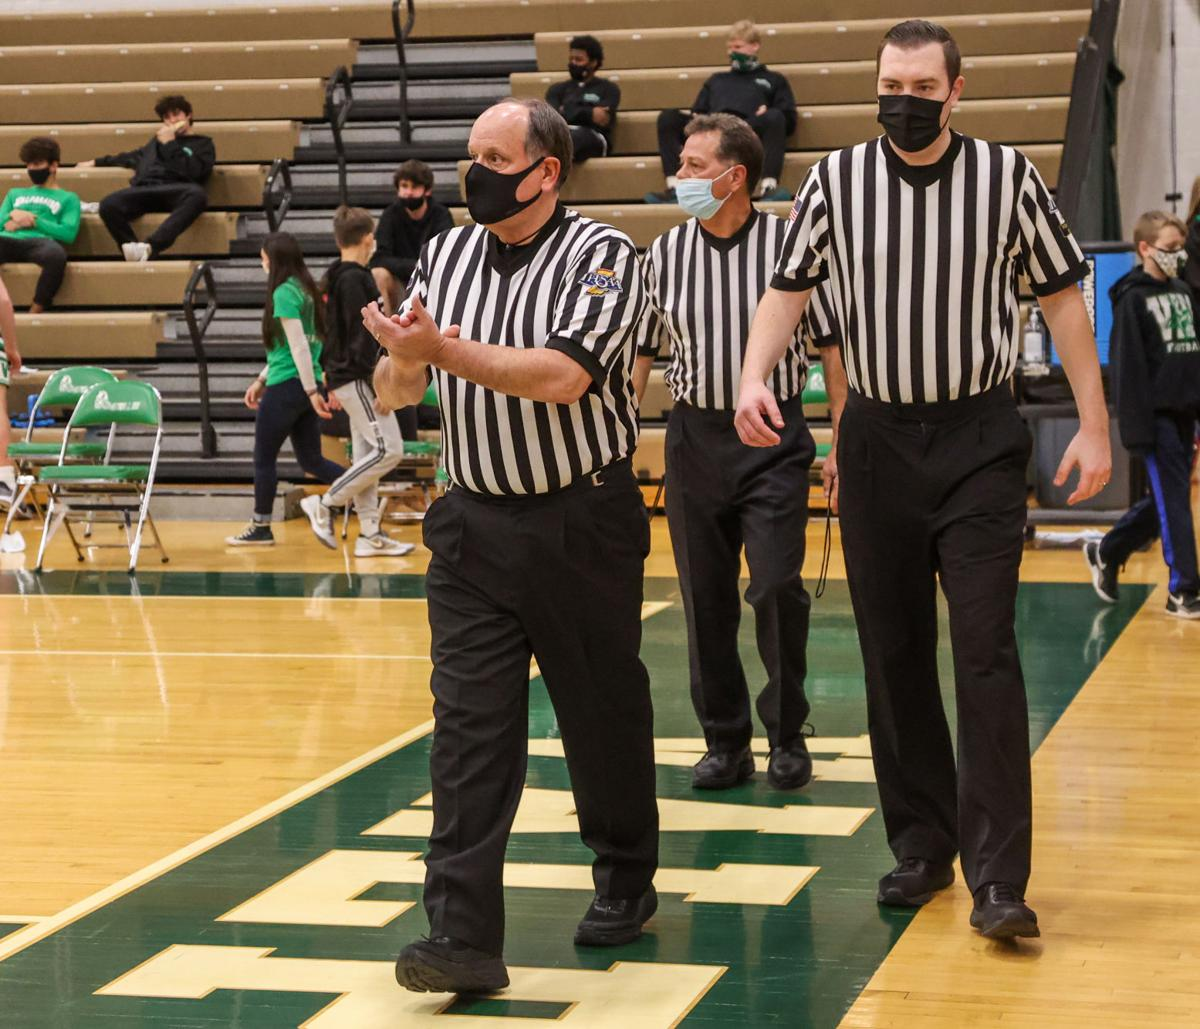 Referees and COVID-19